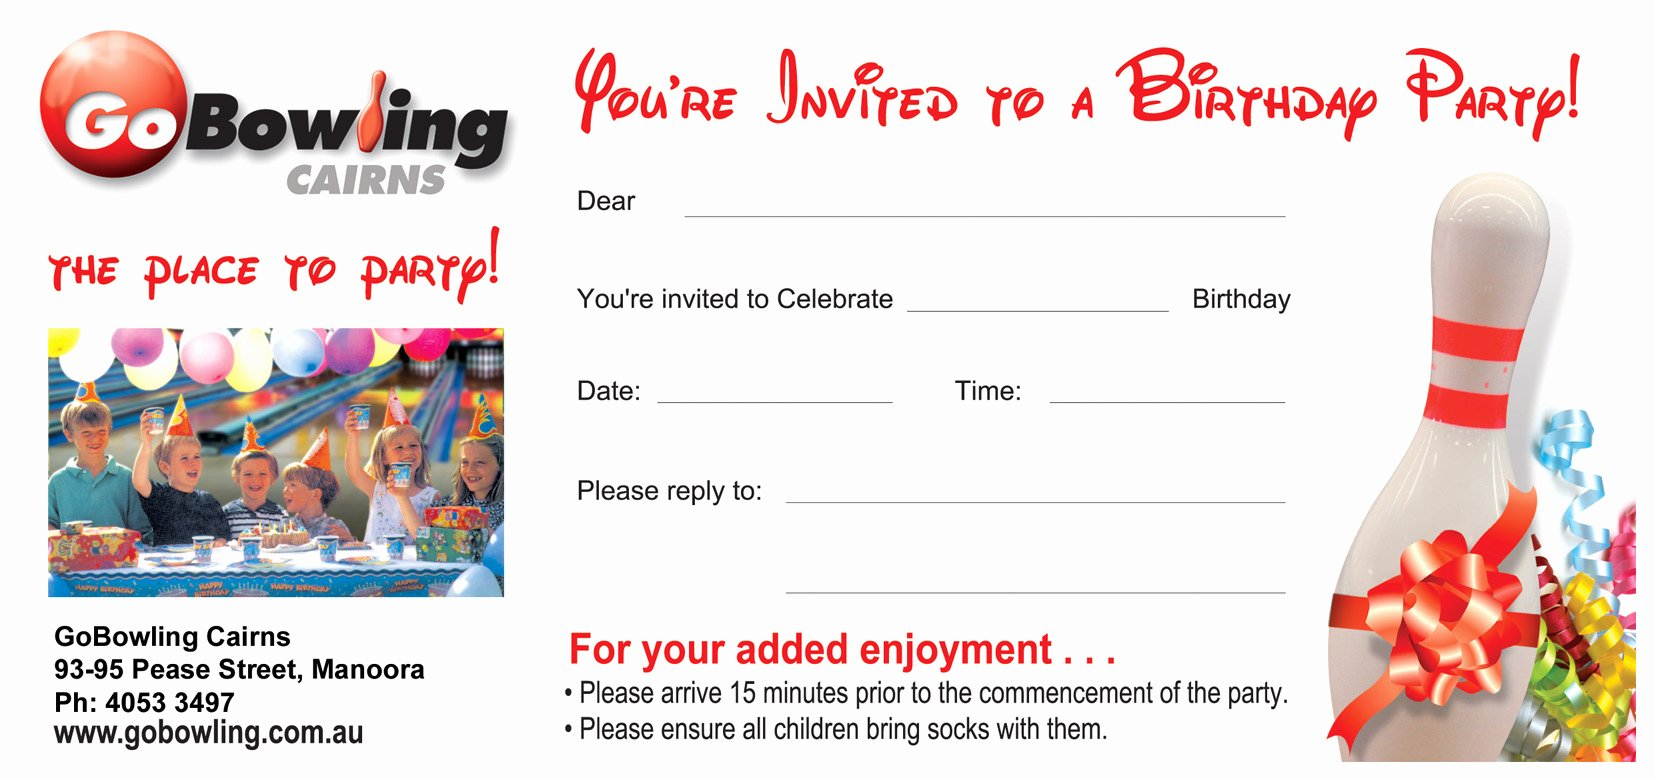 Free Bowling Invitation Template Awesome Bowling Party Invitations Templates Ideas Bowling Party